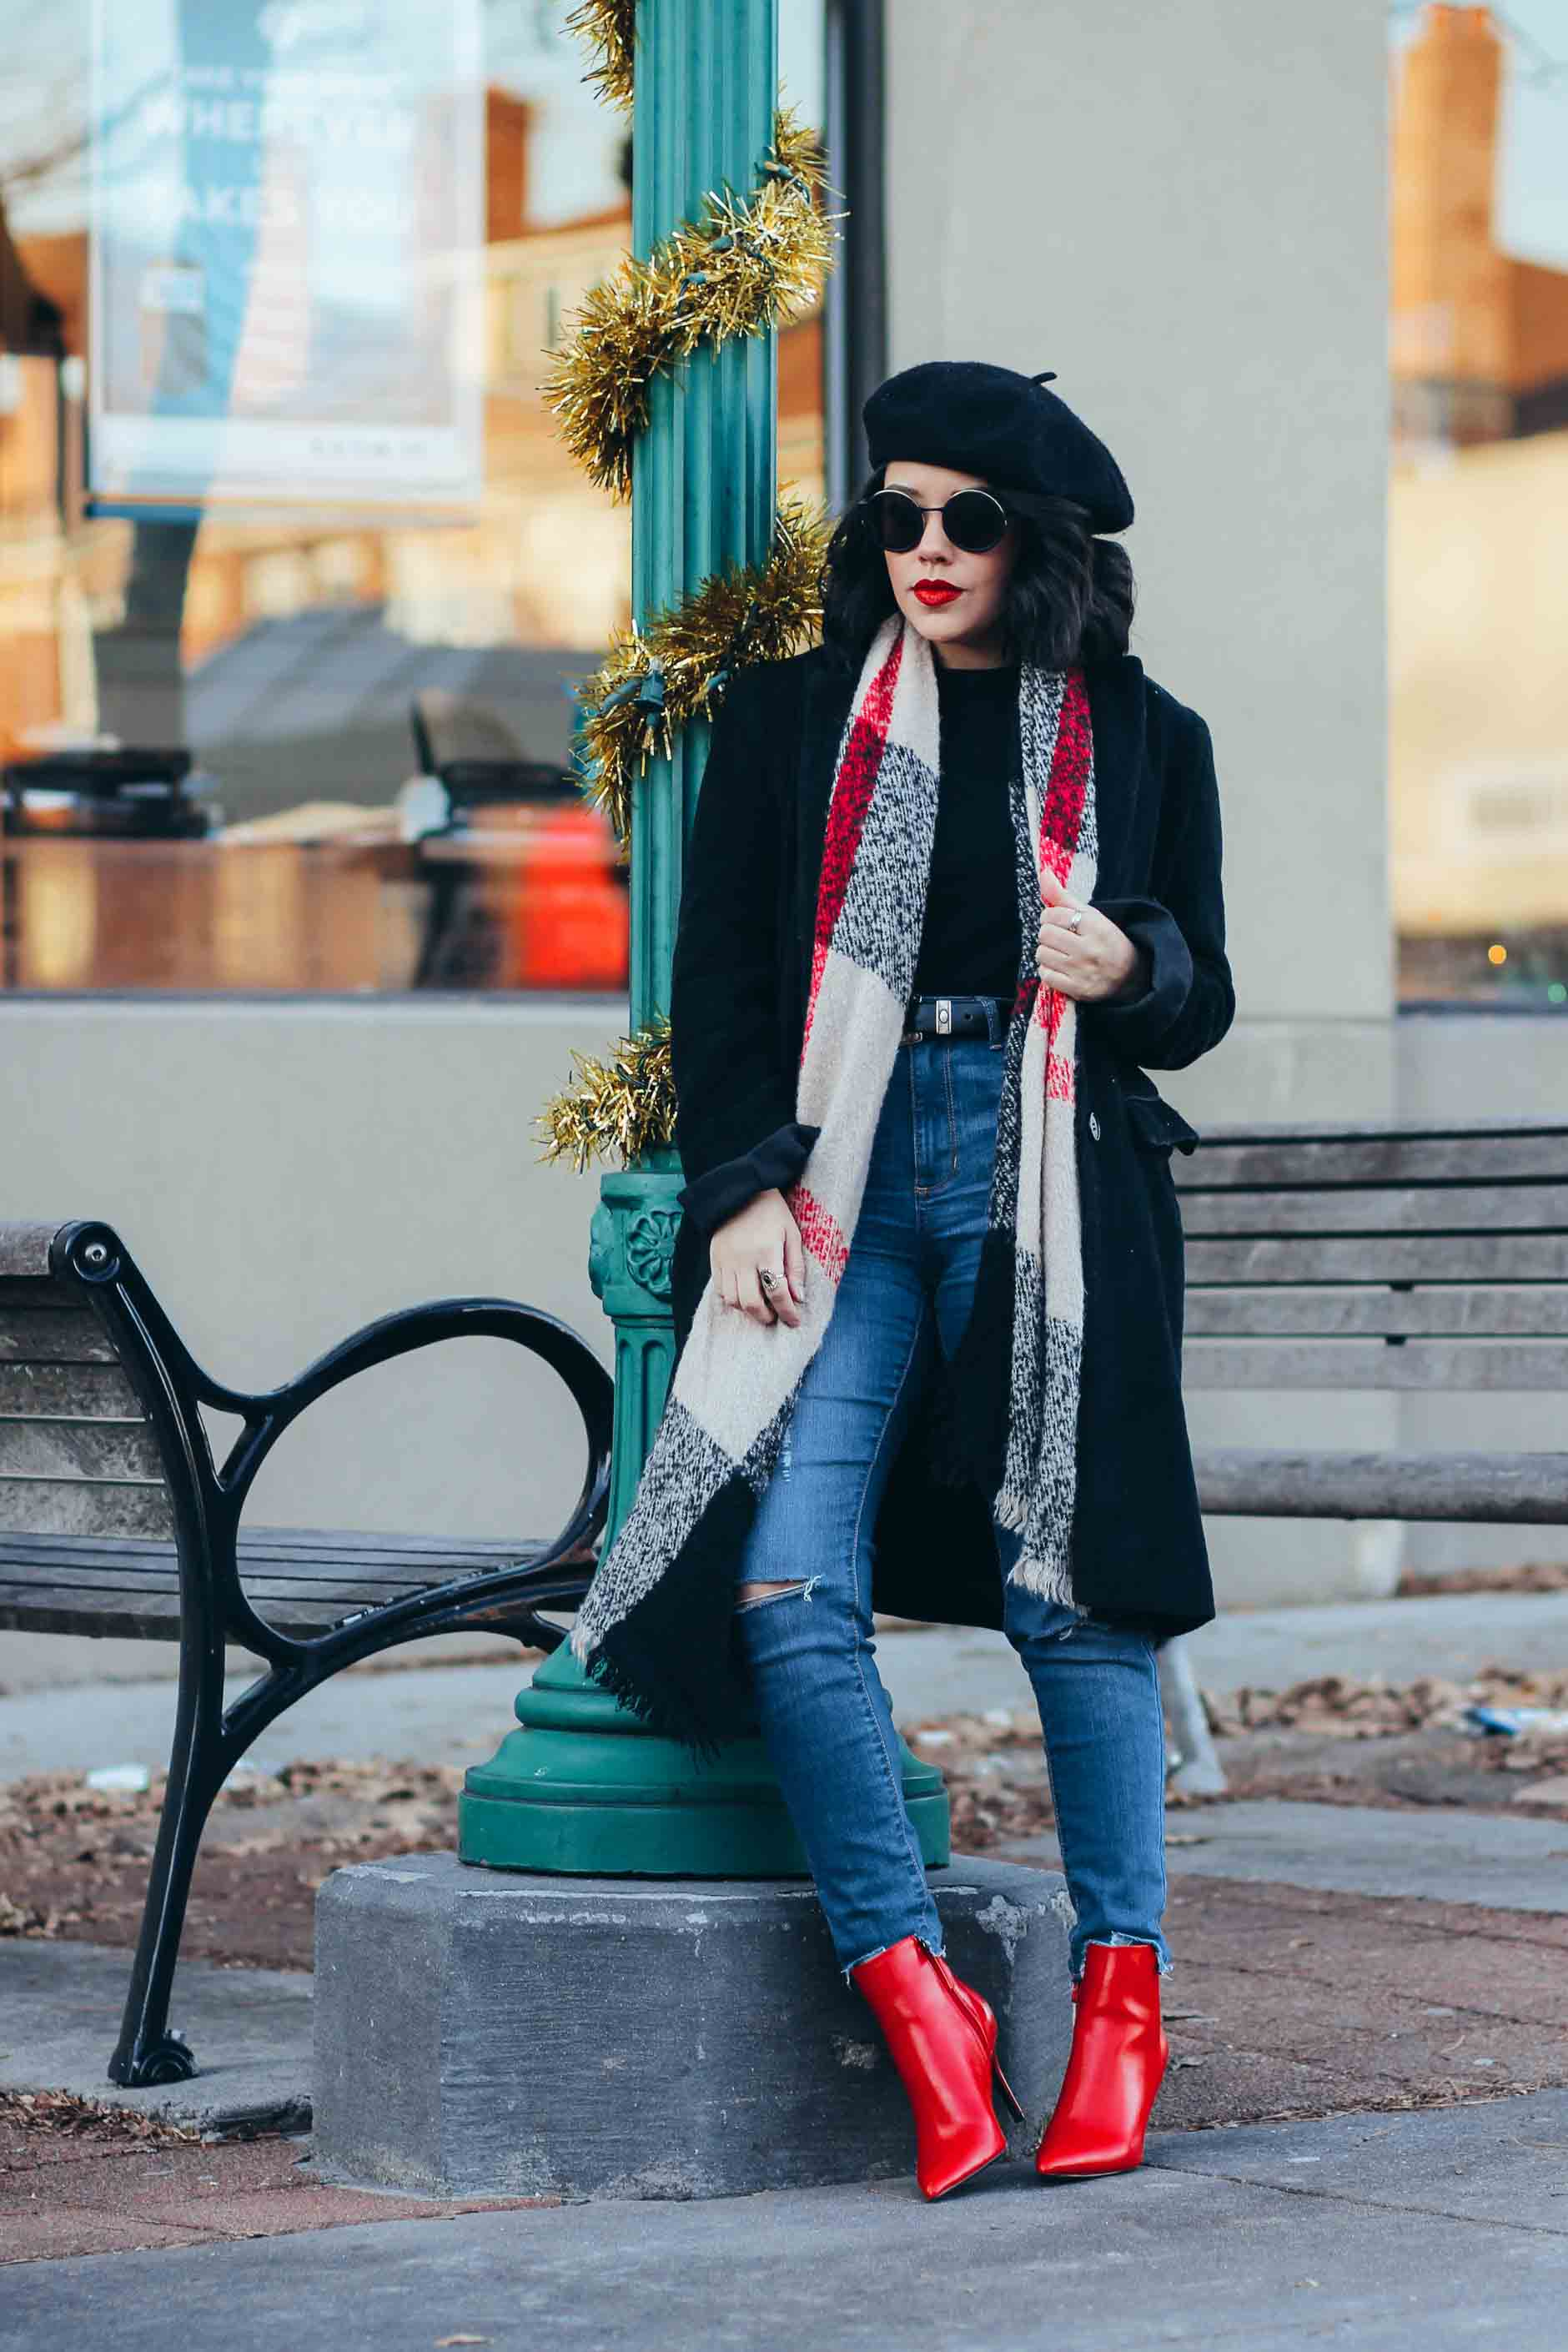 lifestyle blogger naty michele wearing red booties and a plaid scarf